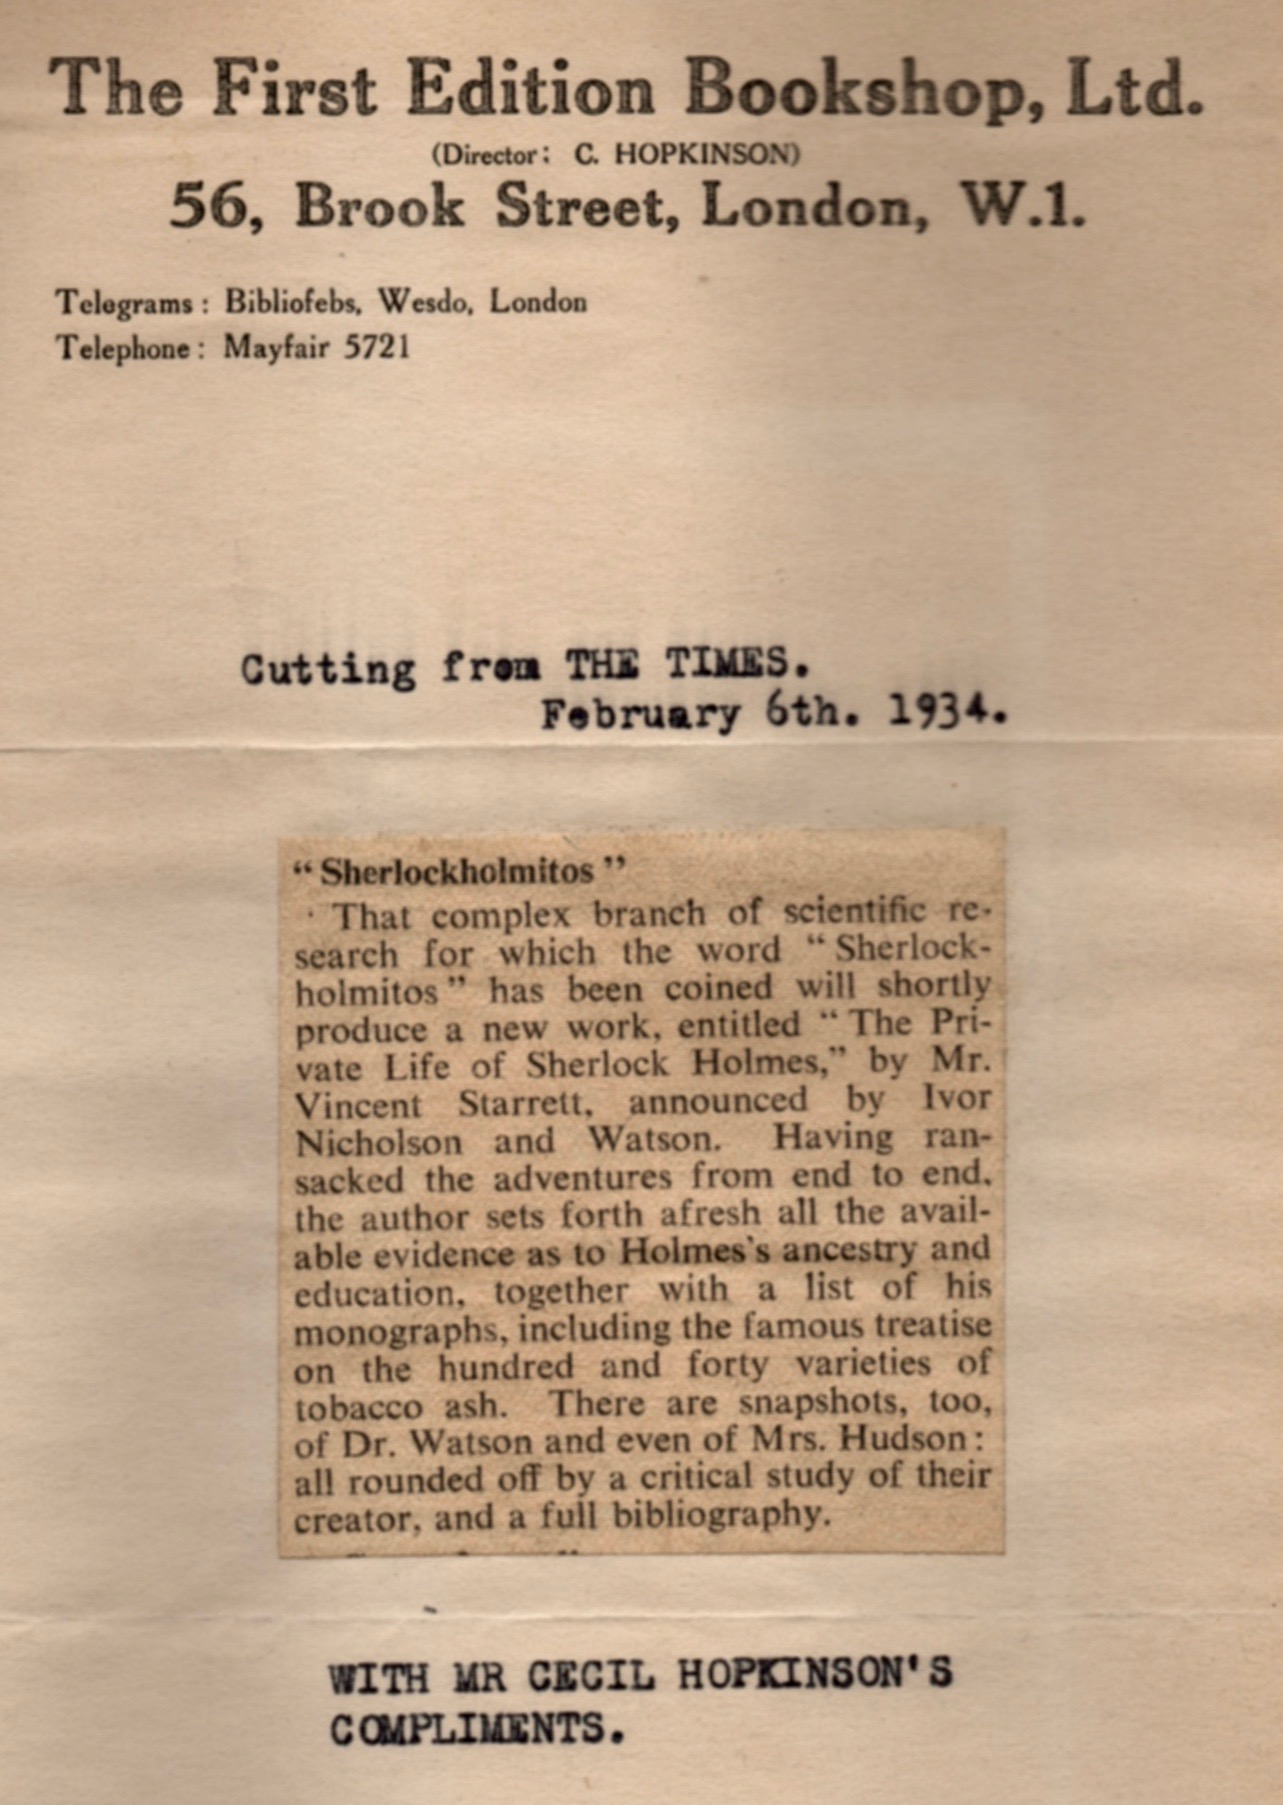 Starrett received a clipping of this brief news item from bookshop owner Cecil Hopkinson. I'm guessing Starrett purchased books from Mr. Hopkinson in the past.